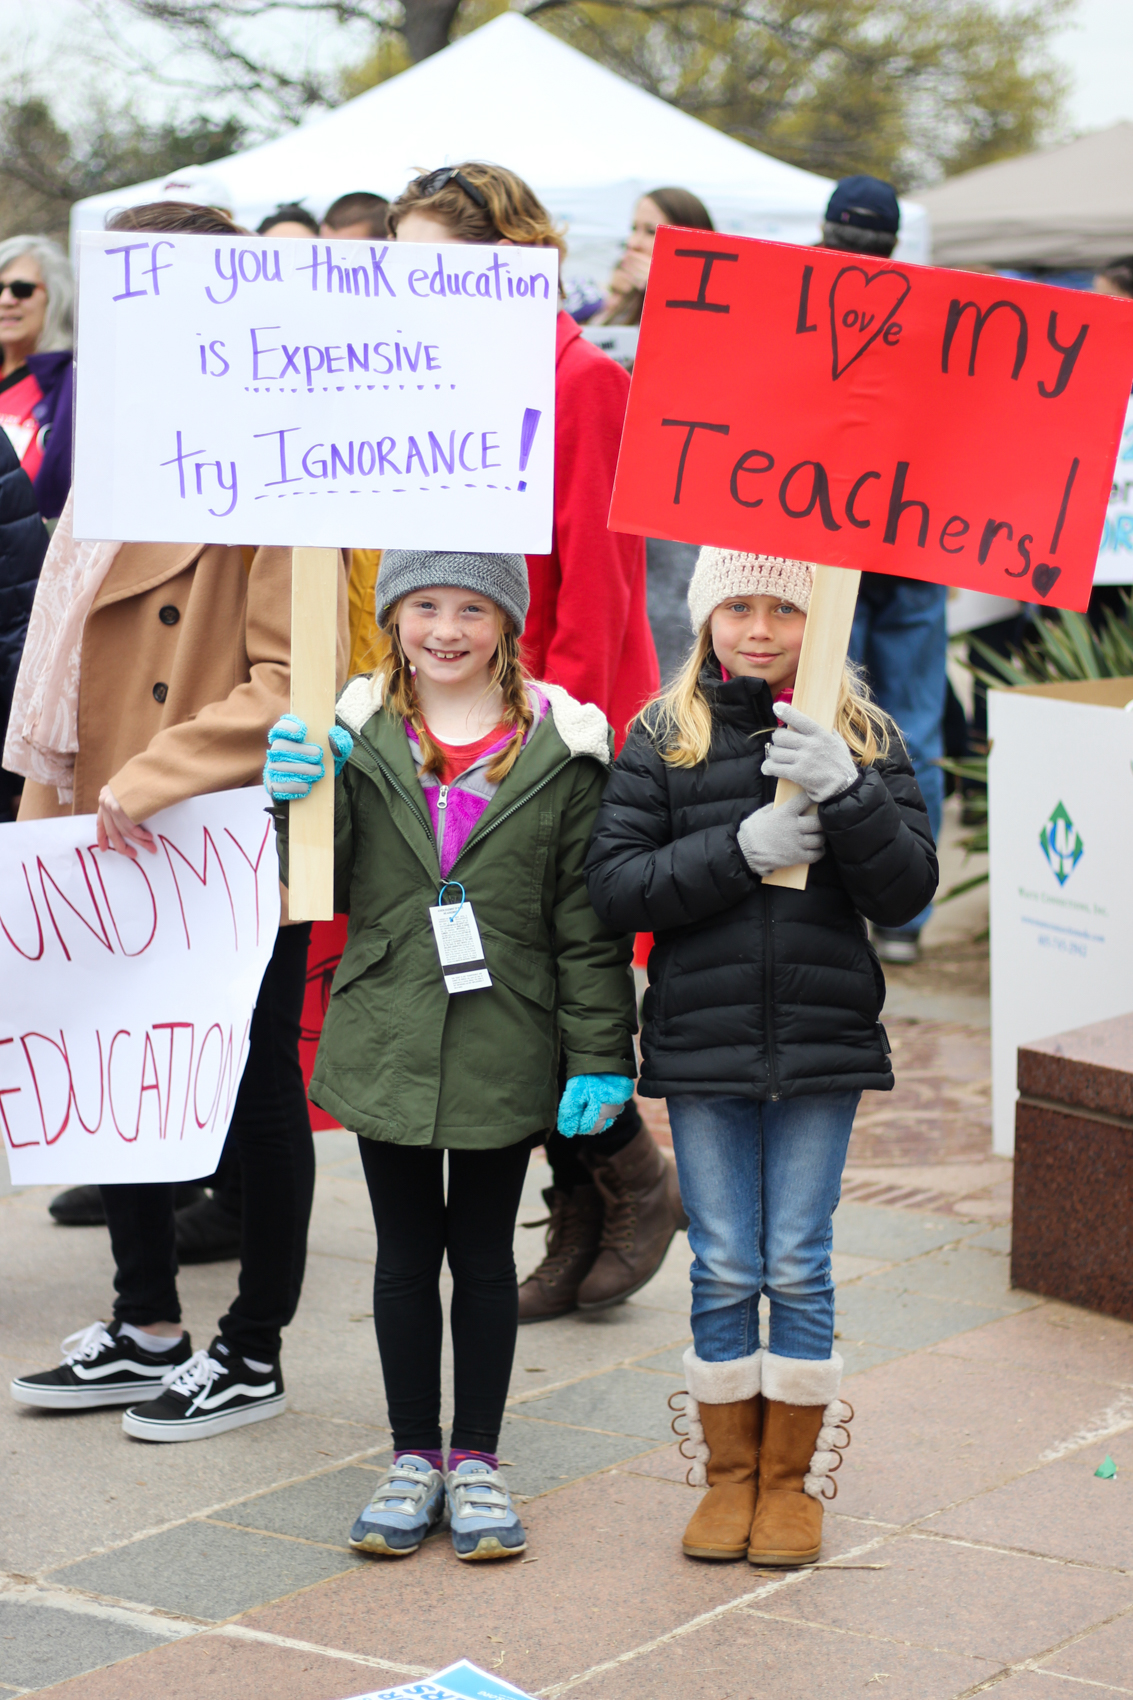 "Jennifer (right), Gatewood Elementary Student, 8 years old MR: ""Why are you here today?"" J: ""I'm here to support teachers."" MR: ""How do you feel about your own teachers?"" J: ""Good!"" MR: ""Who's your favorite teacher?"" J: ""Mrs. Platt."" MR: ""Why?"" J: ""Because she's nice.""   Lilly (left), Nichols Hills Elementary Student, 7 year old MR: ""Why are you here today?"" LS: ""To support my teachers."" MR: ""Why do you think it's important to support teachers?"" LS: ""'Cause they teach us and they support us in education!"""